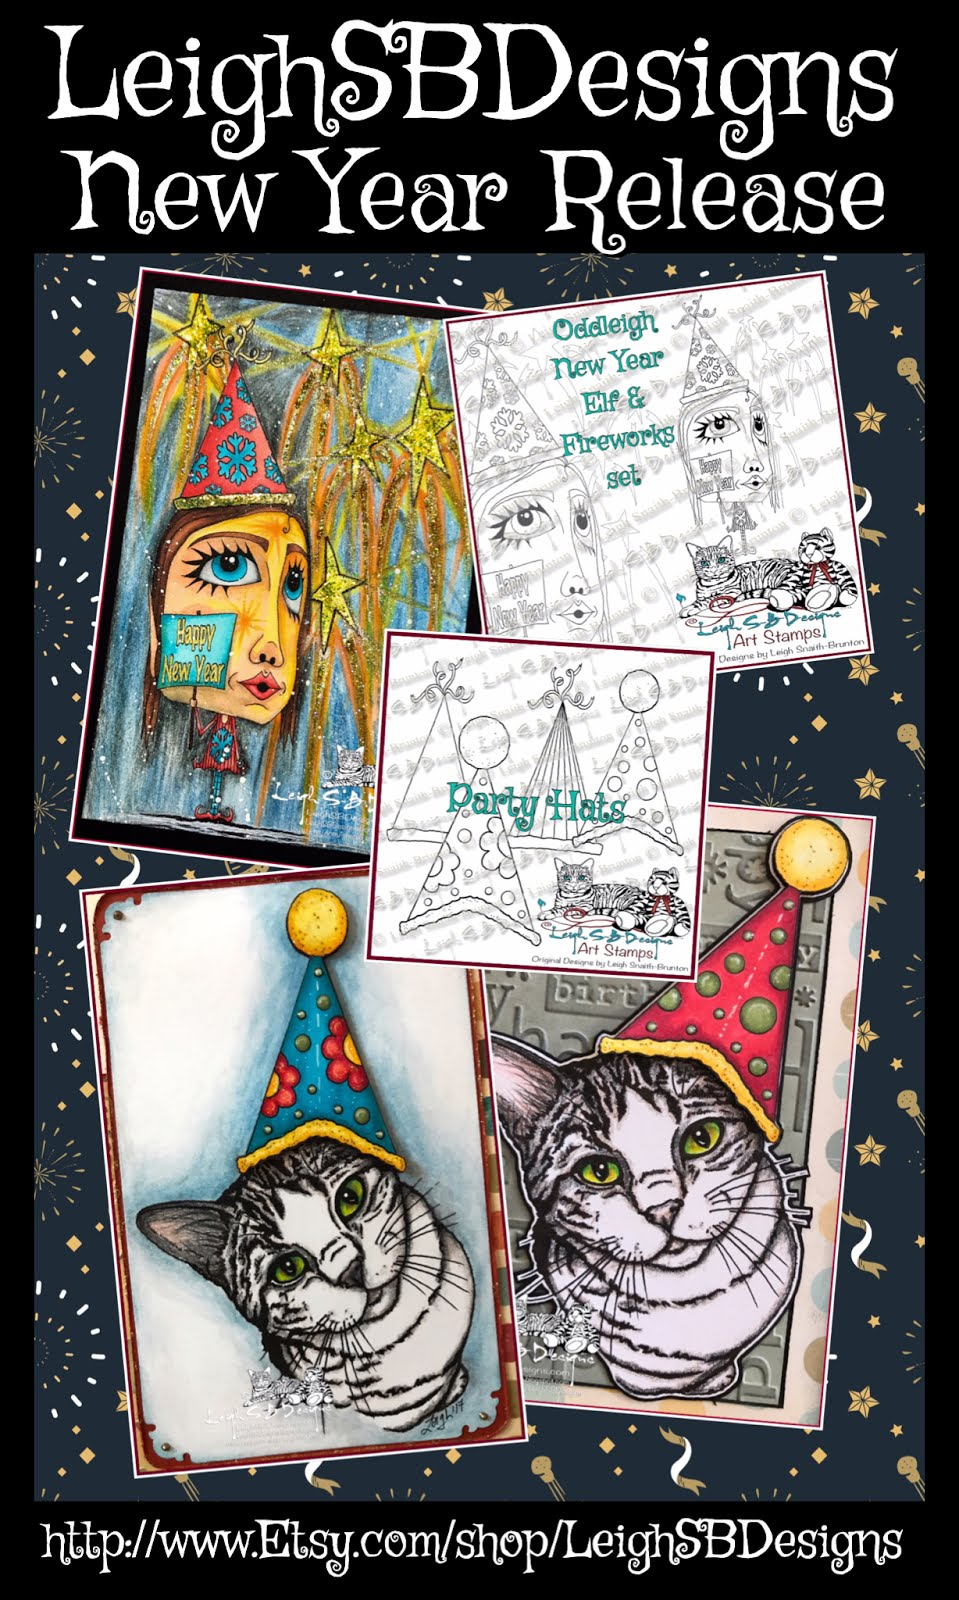 Oddleigh New Year Elf & Party Hats Pack Jan 2018 Release